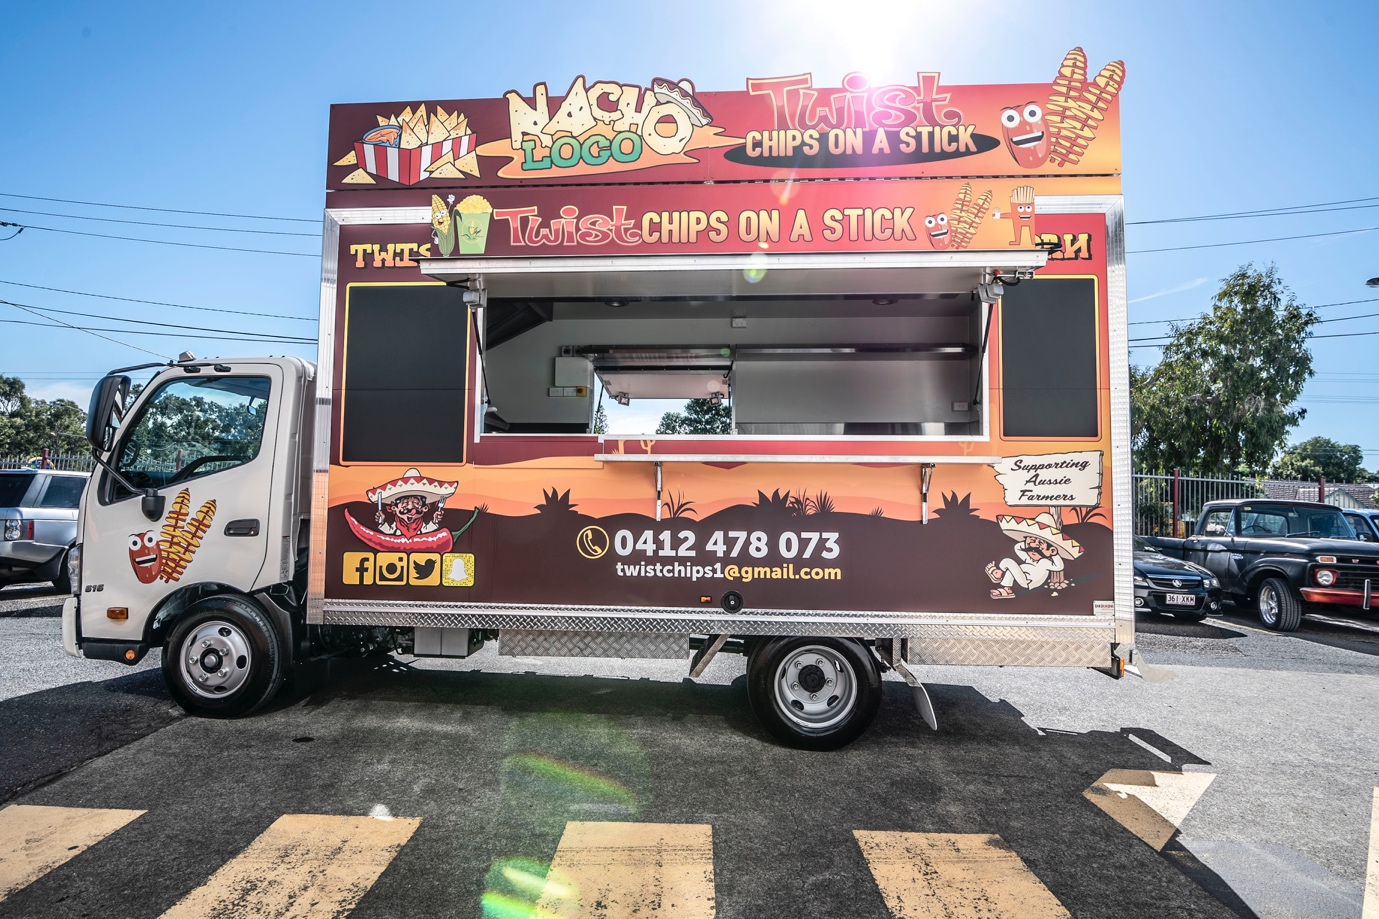 Twist Chip Food Truck